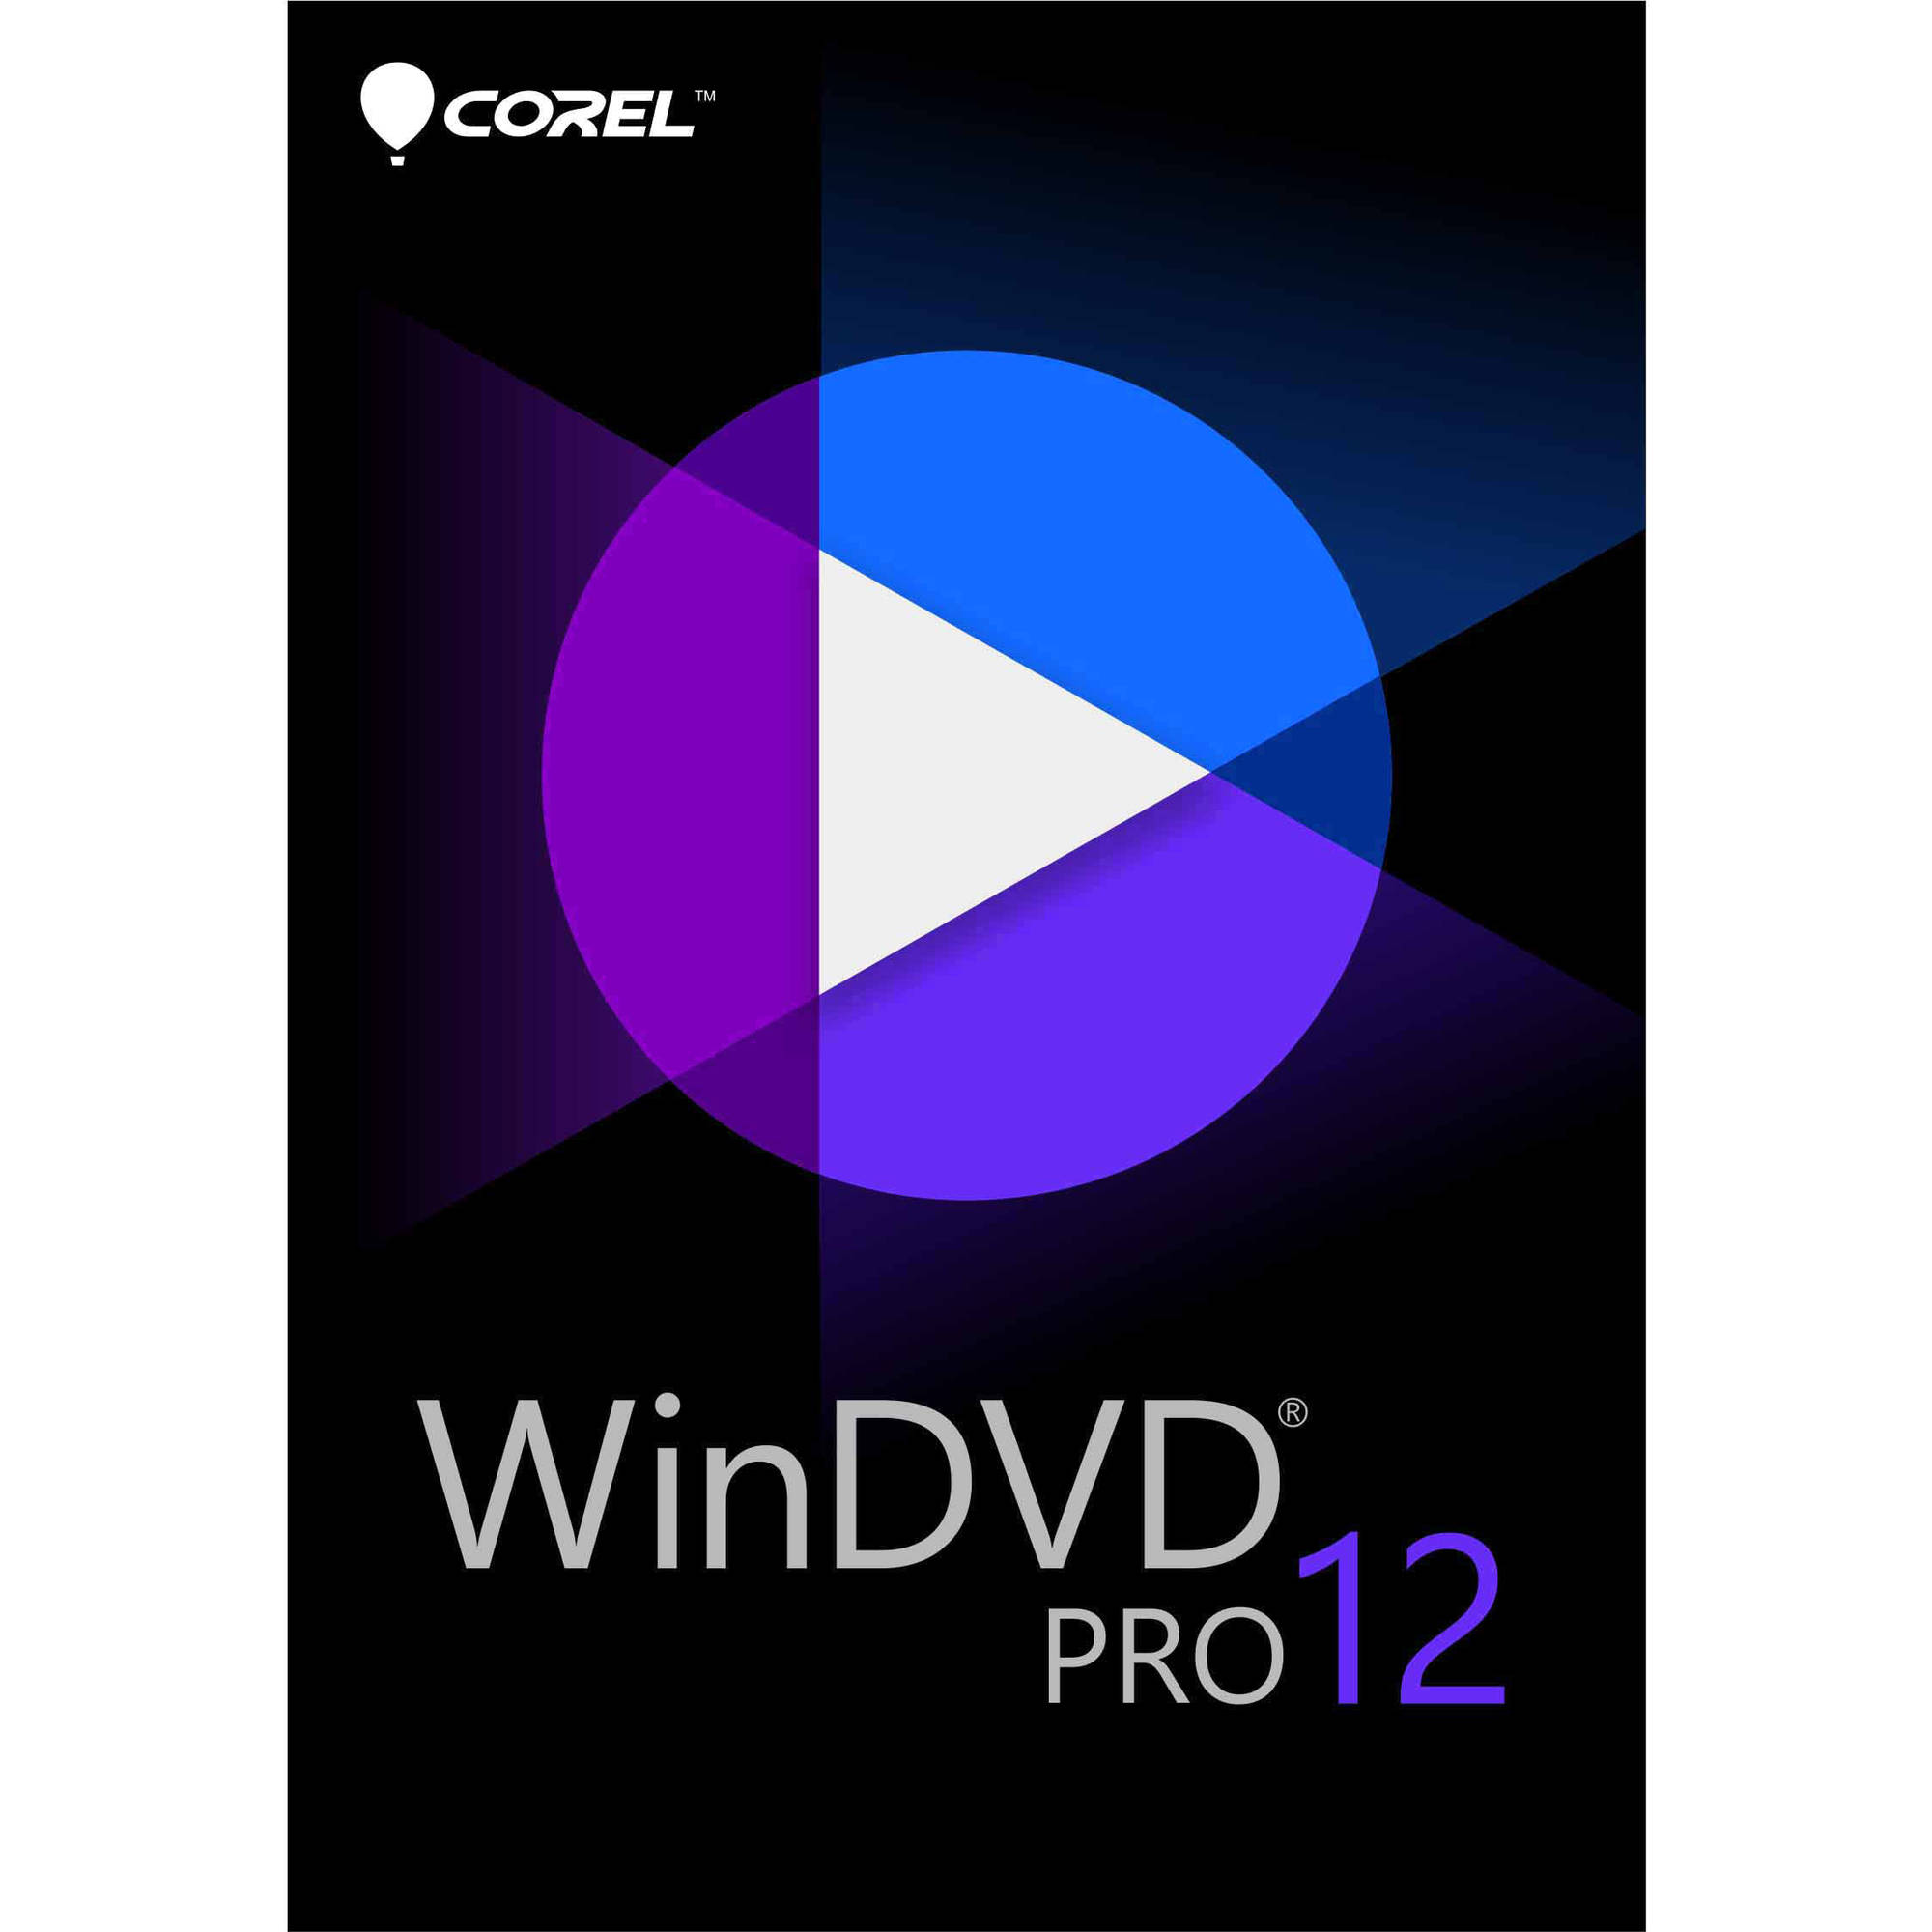 WinDVD Pro 12 Leading Blu-ray and DVD Software